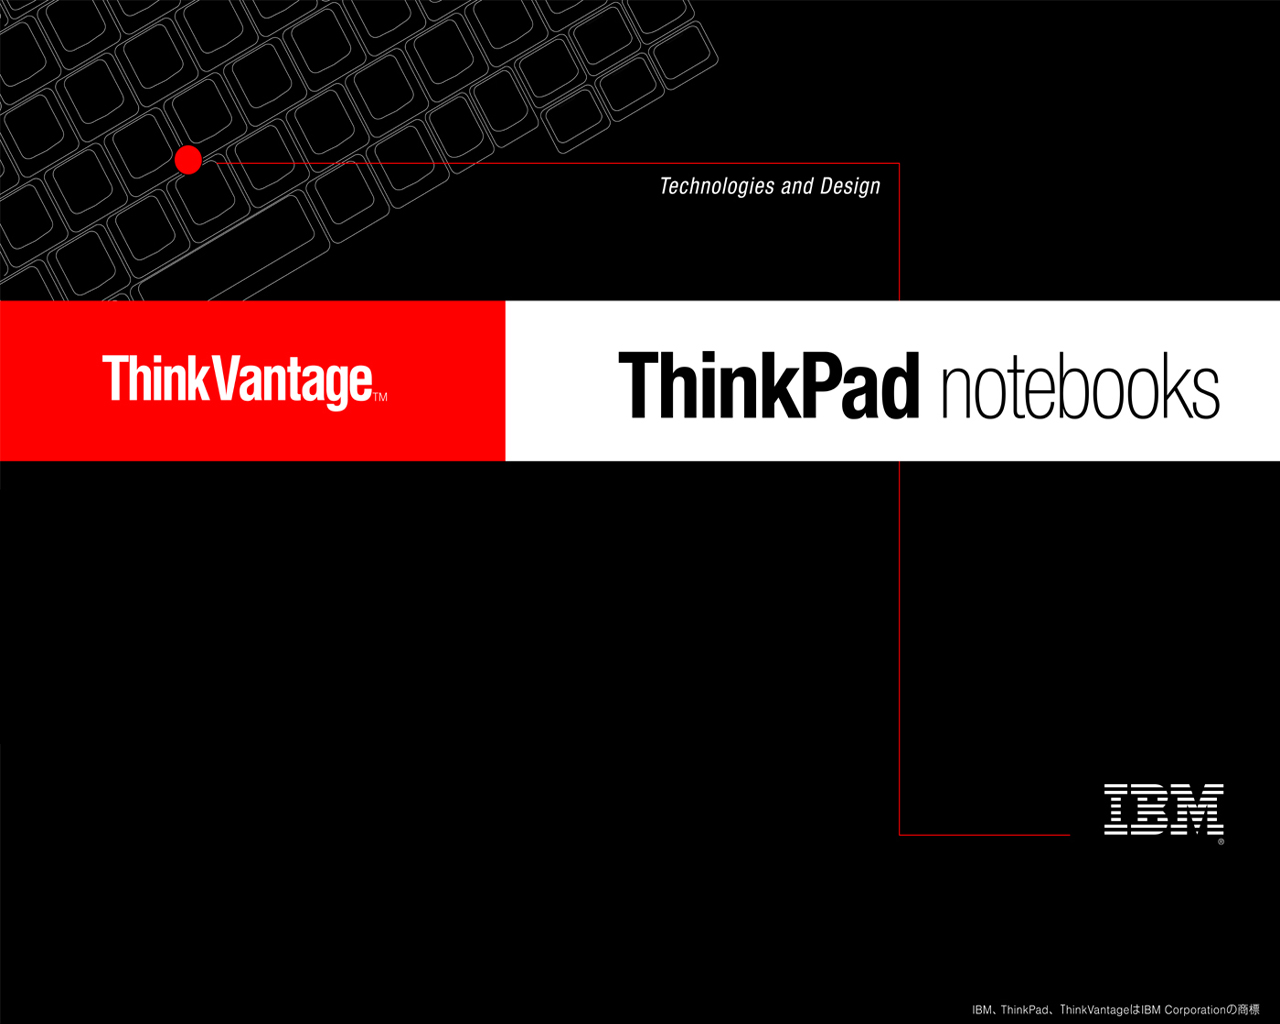 1280x1024 ibm think vantage desktop pc and mac wallpaper gumiabroncs Images